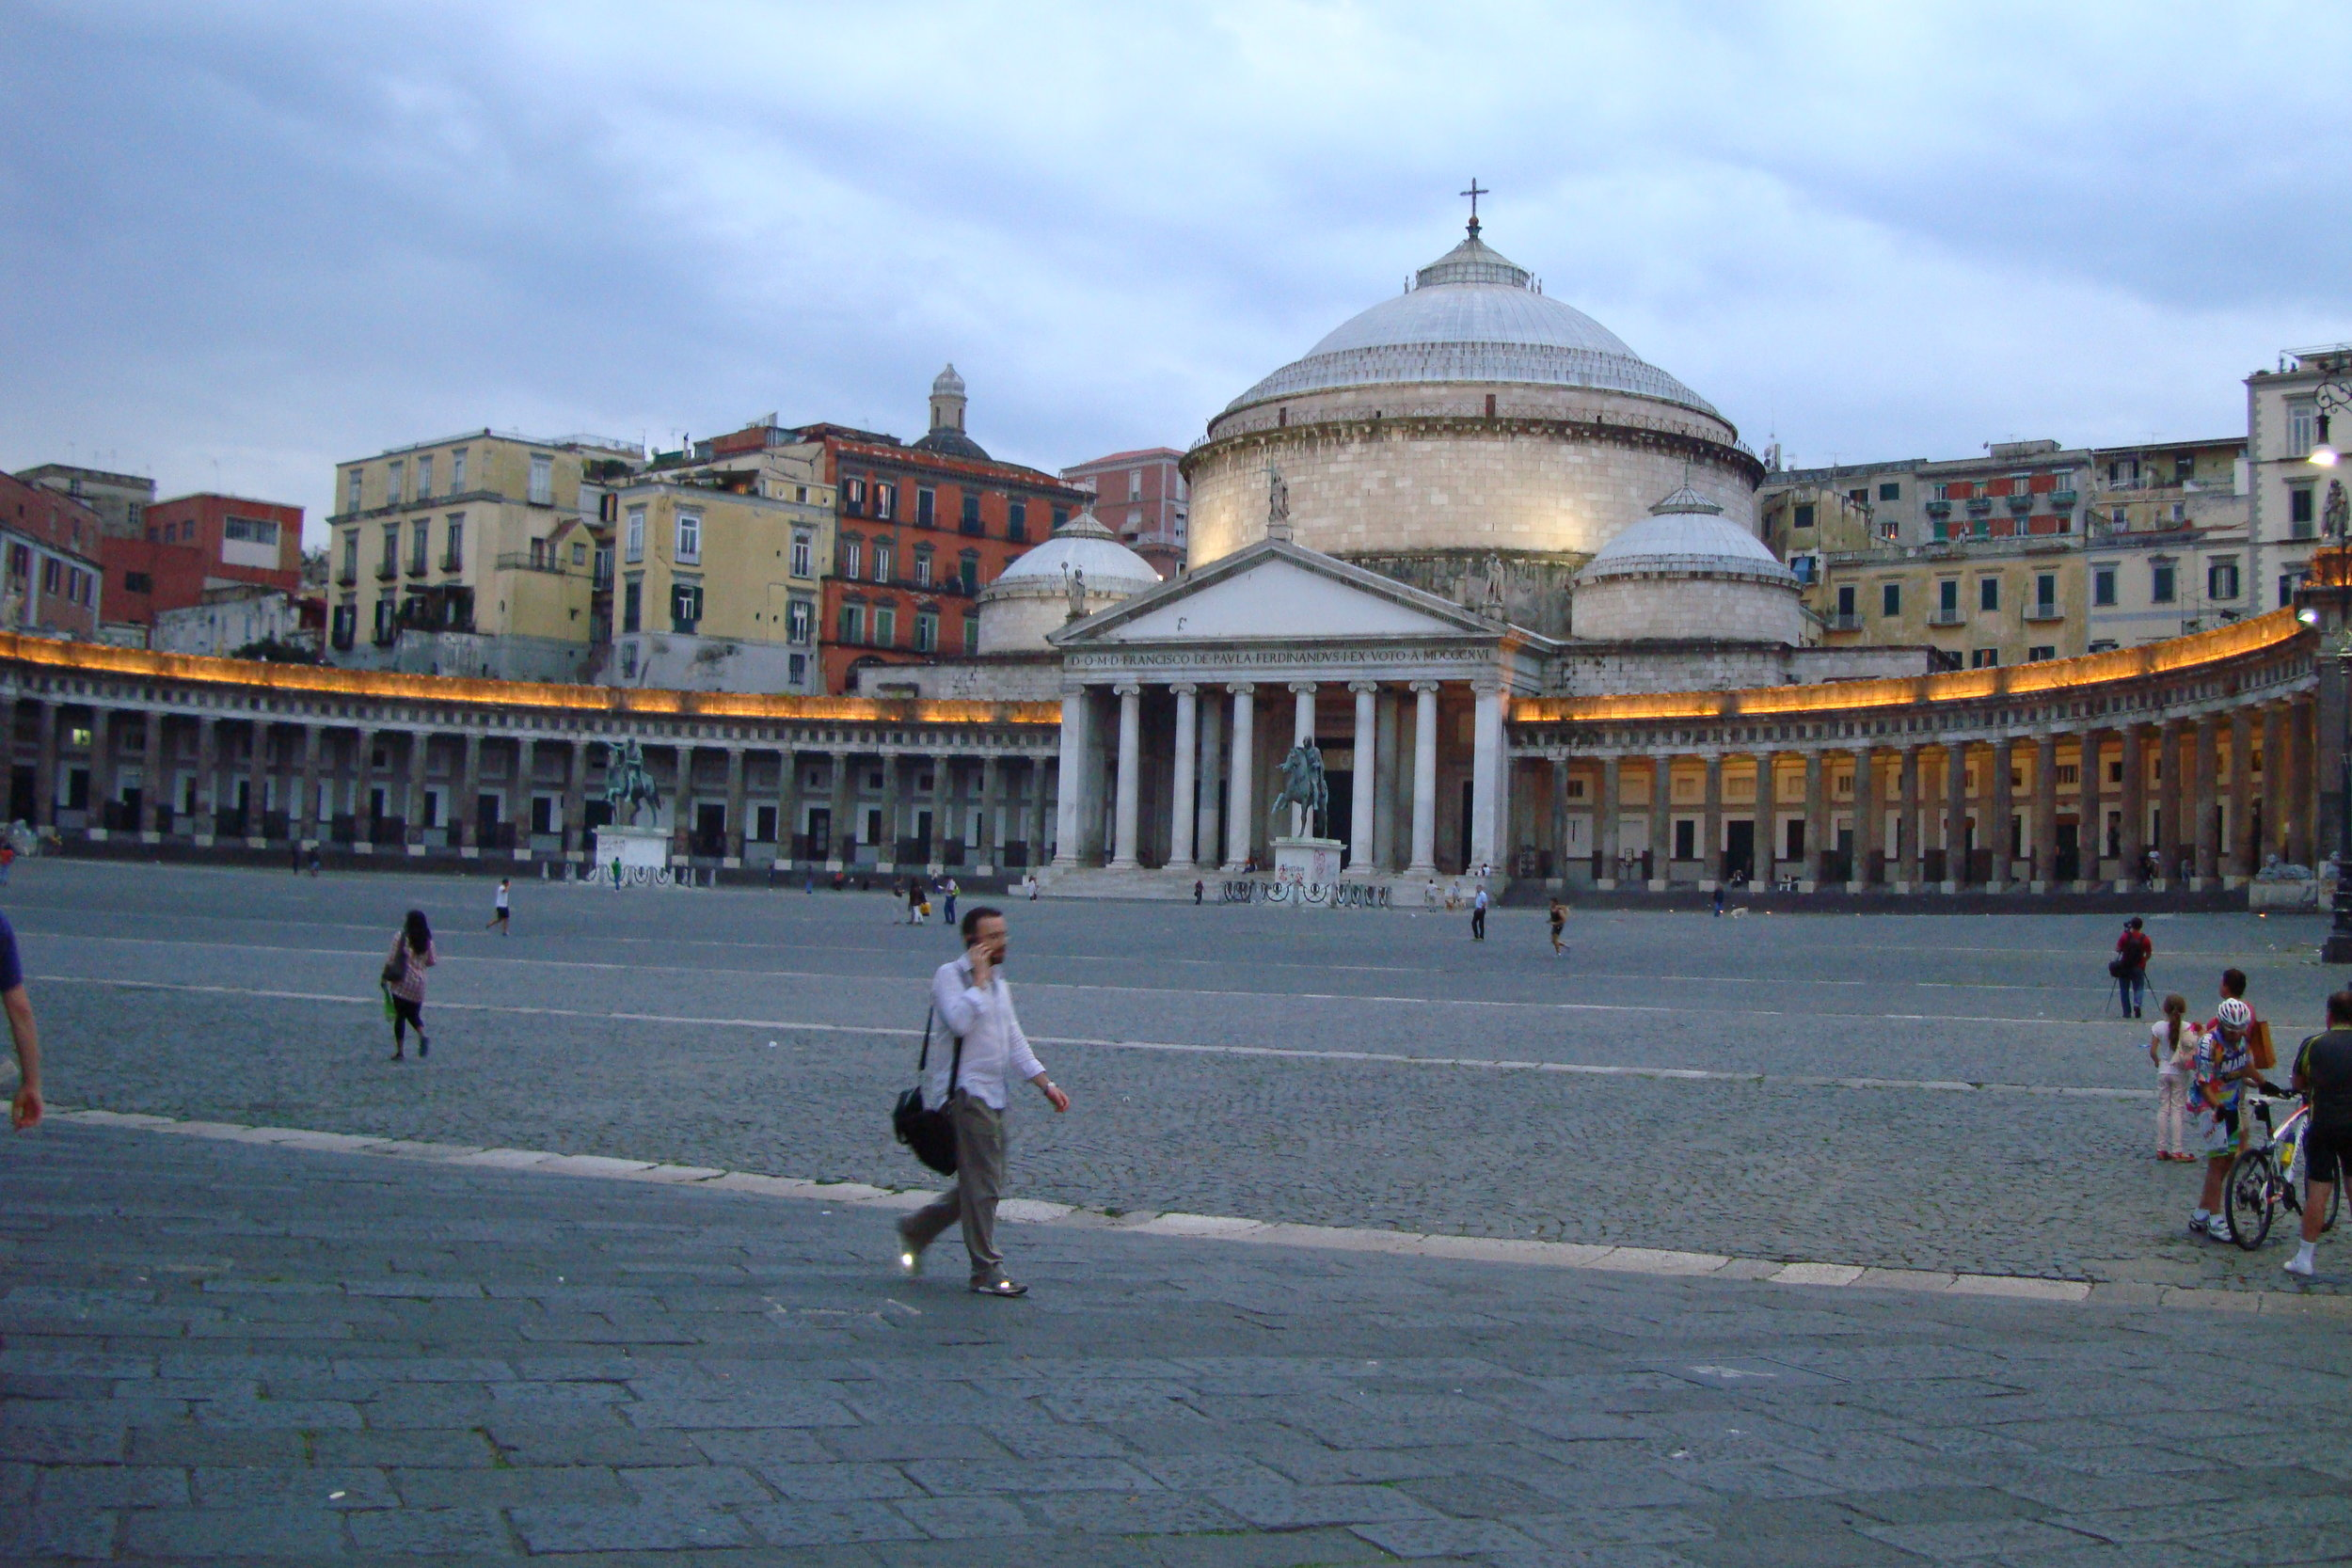 Photo by Travel Italian Style | Piazza del Plebiscito in Naples Italy